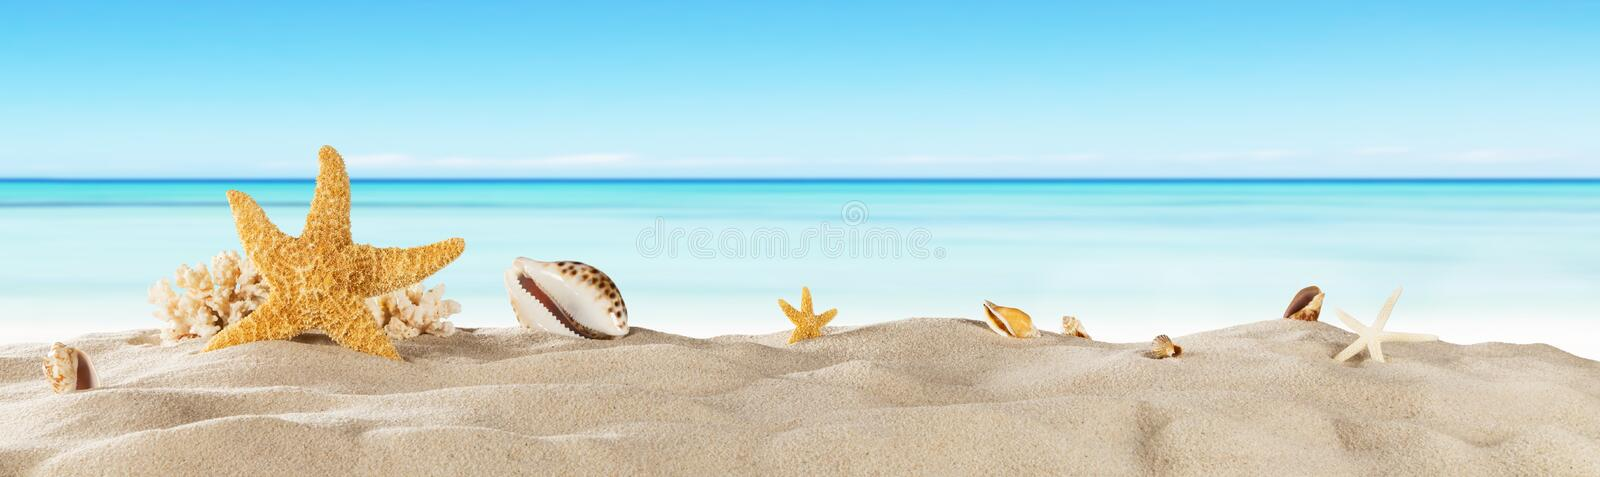 Tropical beach with sea star on sand, summer holiday background. Travel and beach vacation